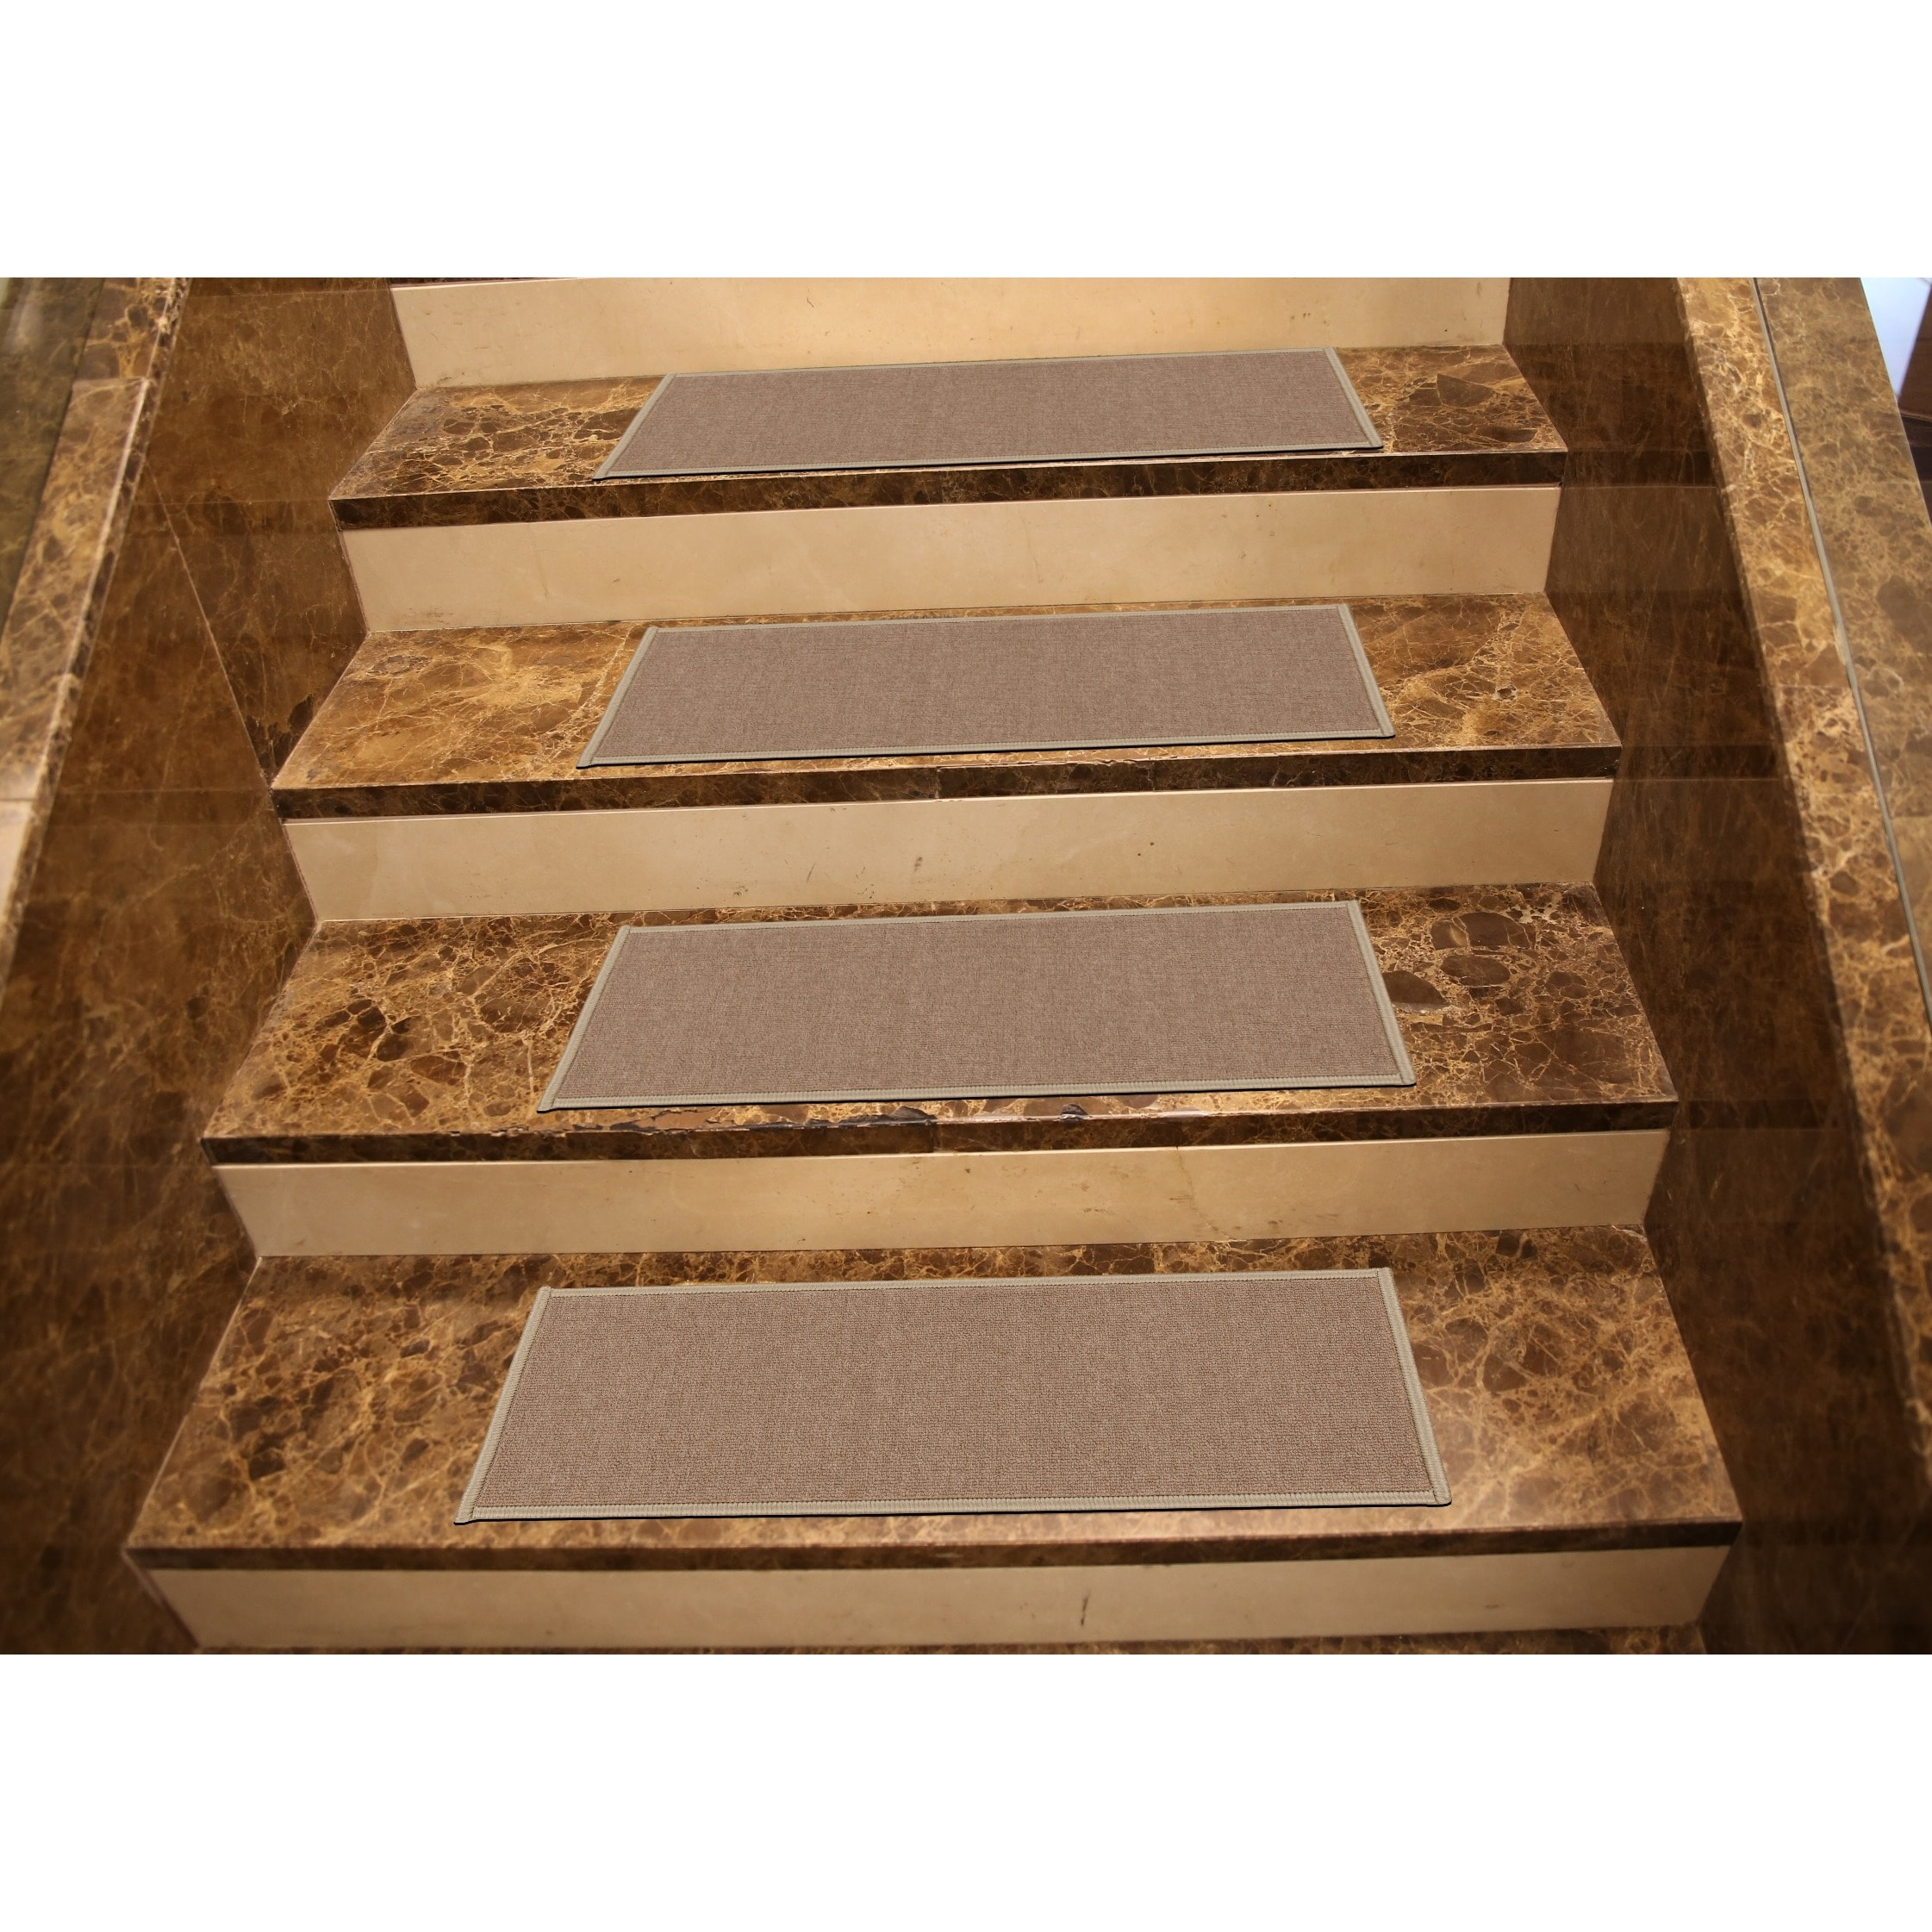 Ottomanson Dark Beige Skid Resistant Stair Treads (Set Of 7)   Free  Shipping On Orders Over $45   Overstock.com   16796001